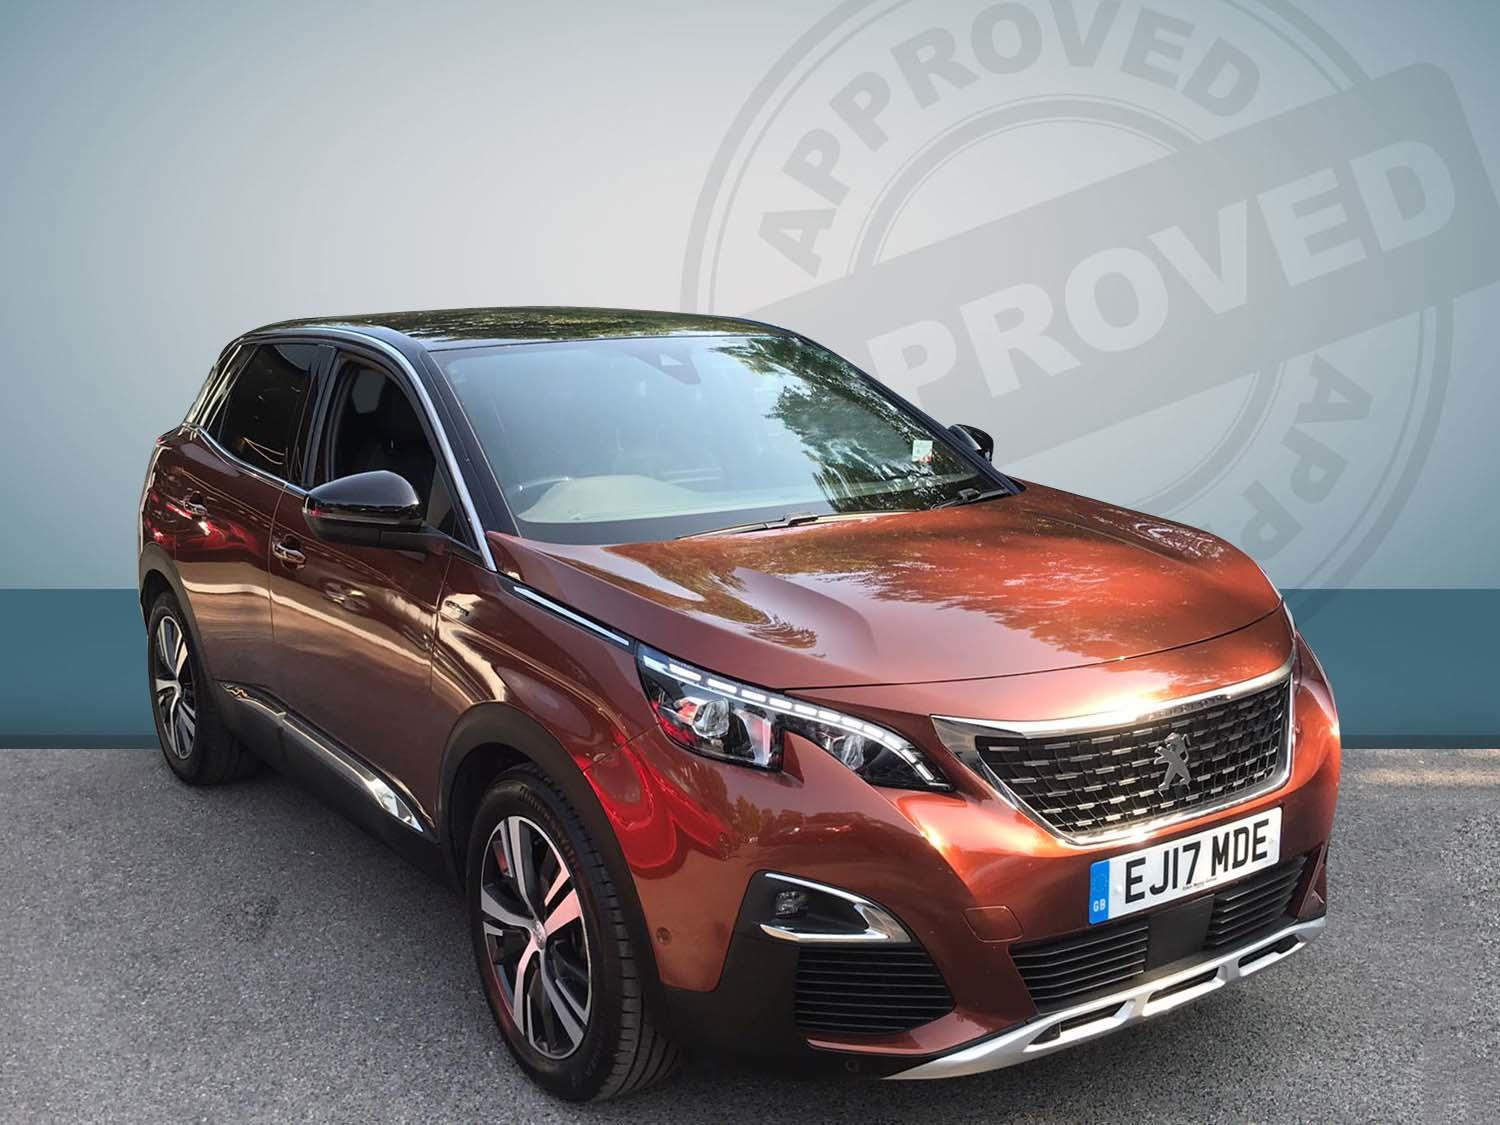 Peugeot 3008 Suv 1.2 Prtch 130 Gt Line S/s 130 Hatchback Petrol Orange